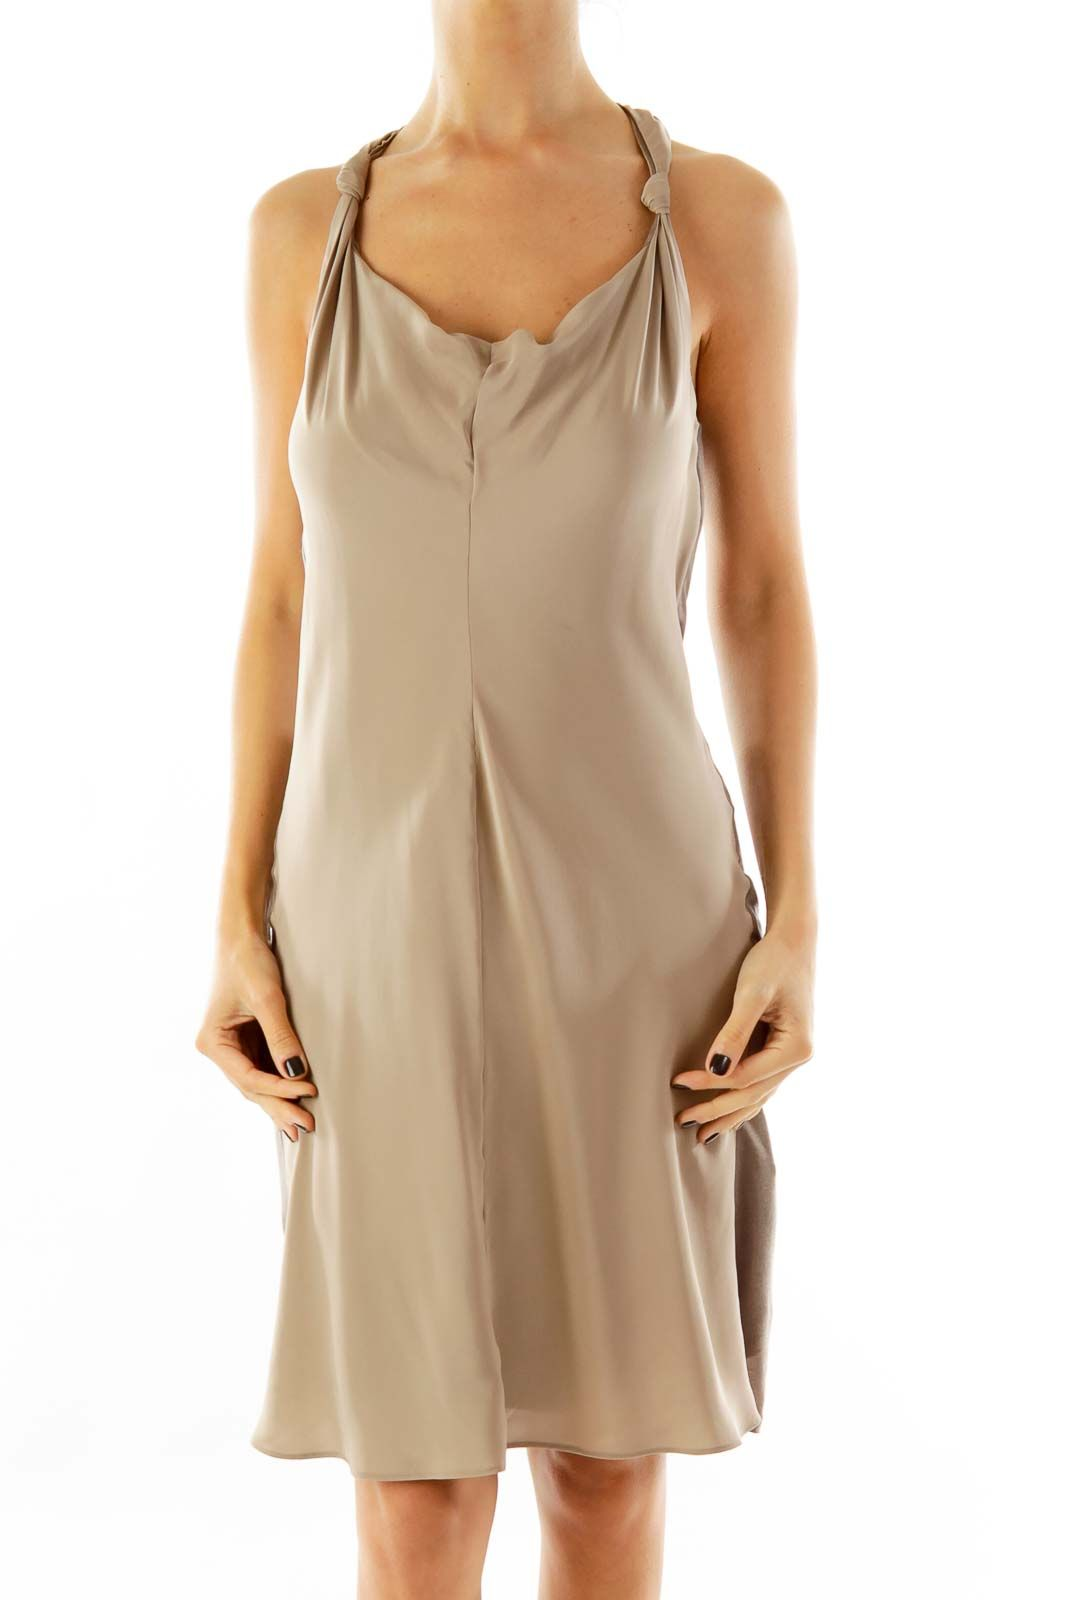 244a09dd805 Seductive dresses for a weekend night out taupe racerback cocktail dress by  Banana Republic  silkroll